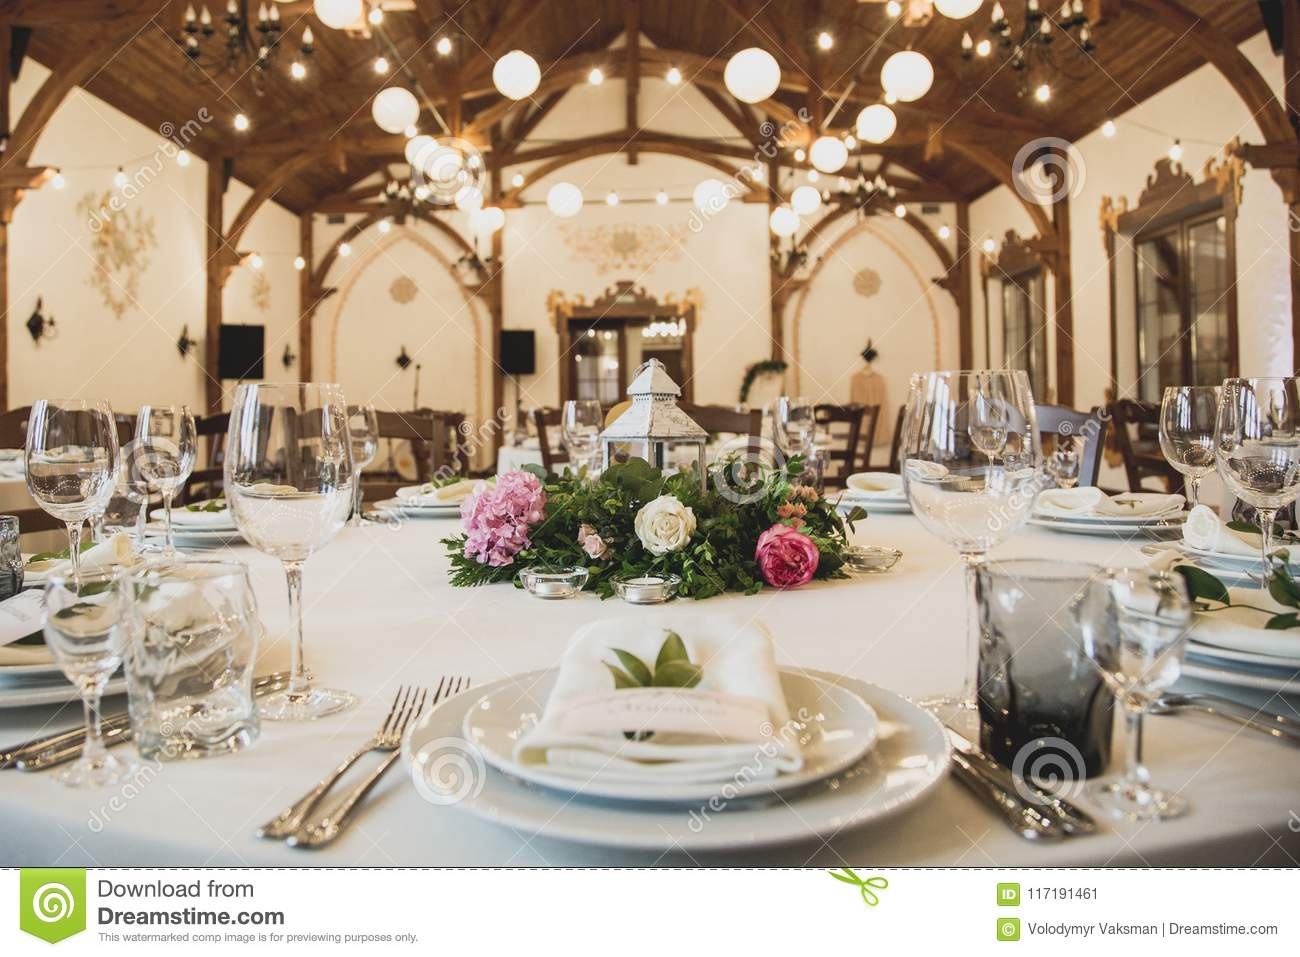 Wedding Table In The Restaurant With A Lot Of Transparent Glasses Napkins And Decoration Of Dishes Stock Image Image Of Floral Interior 117191461